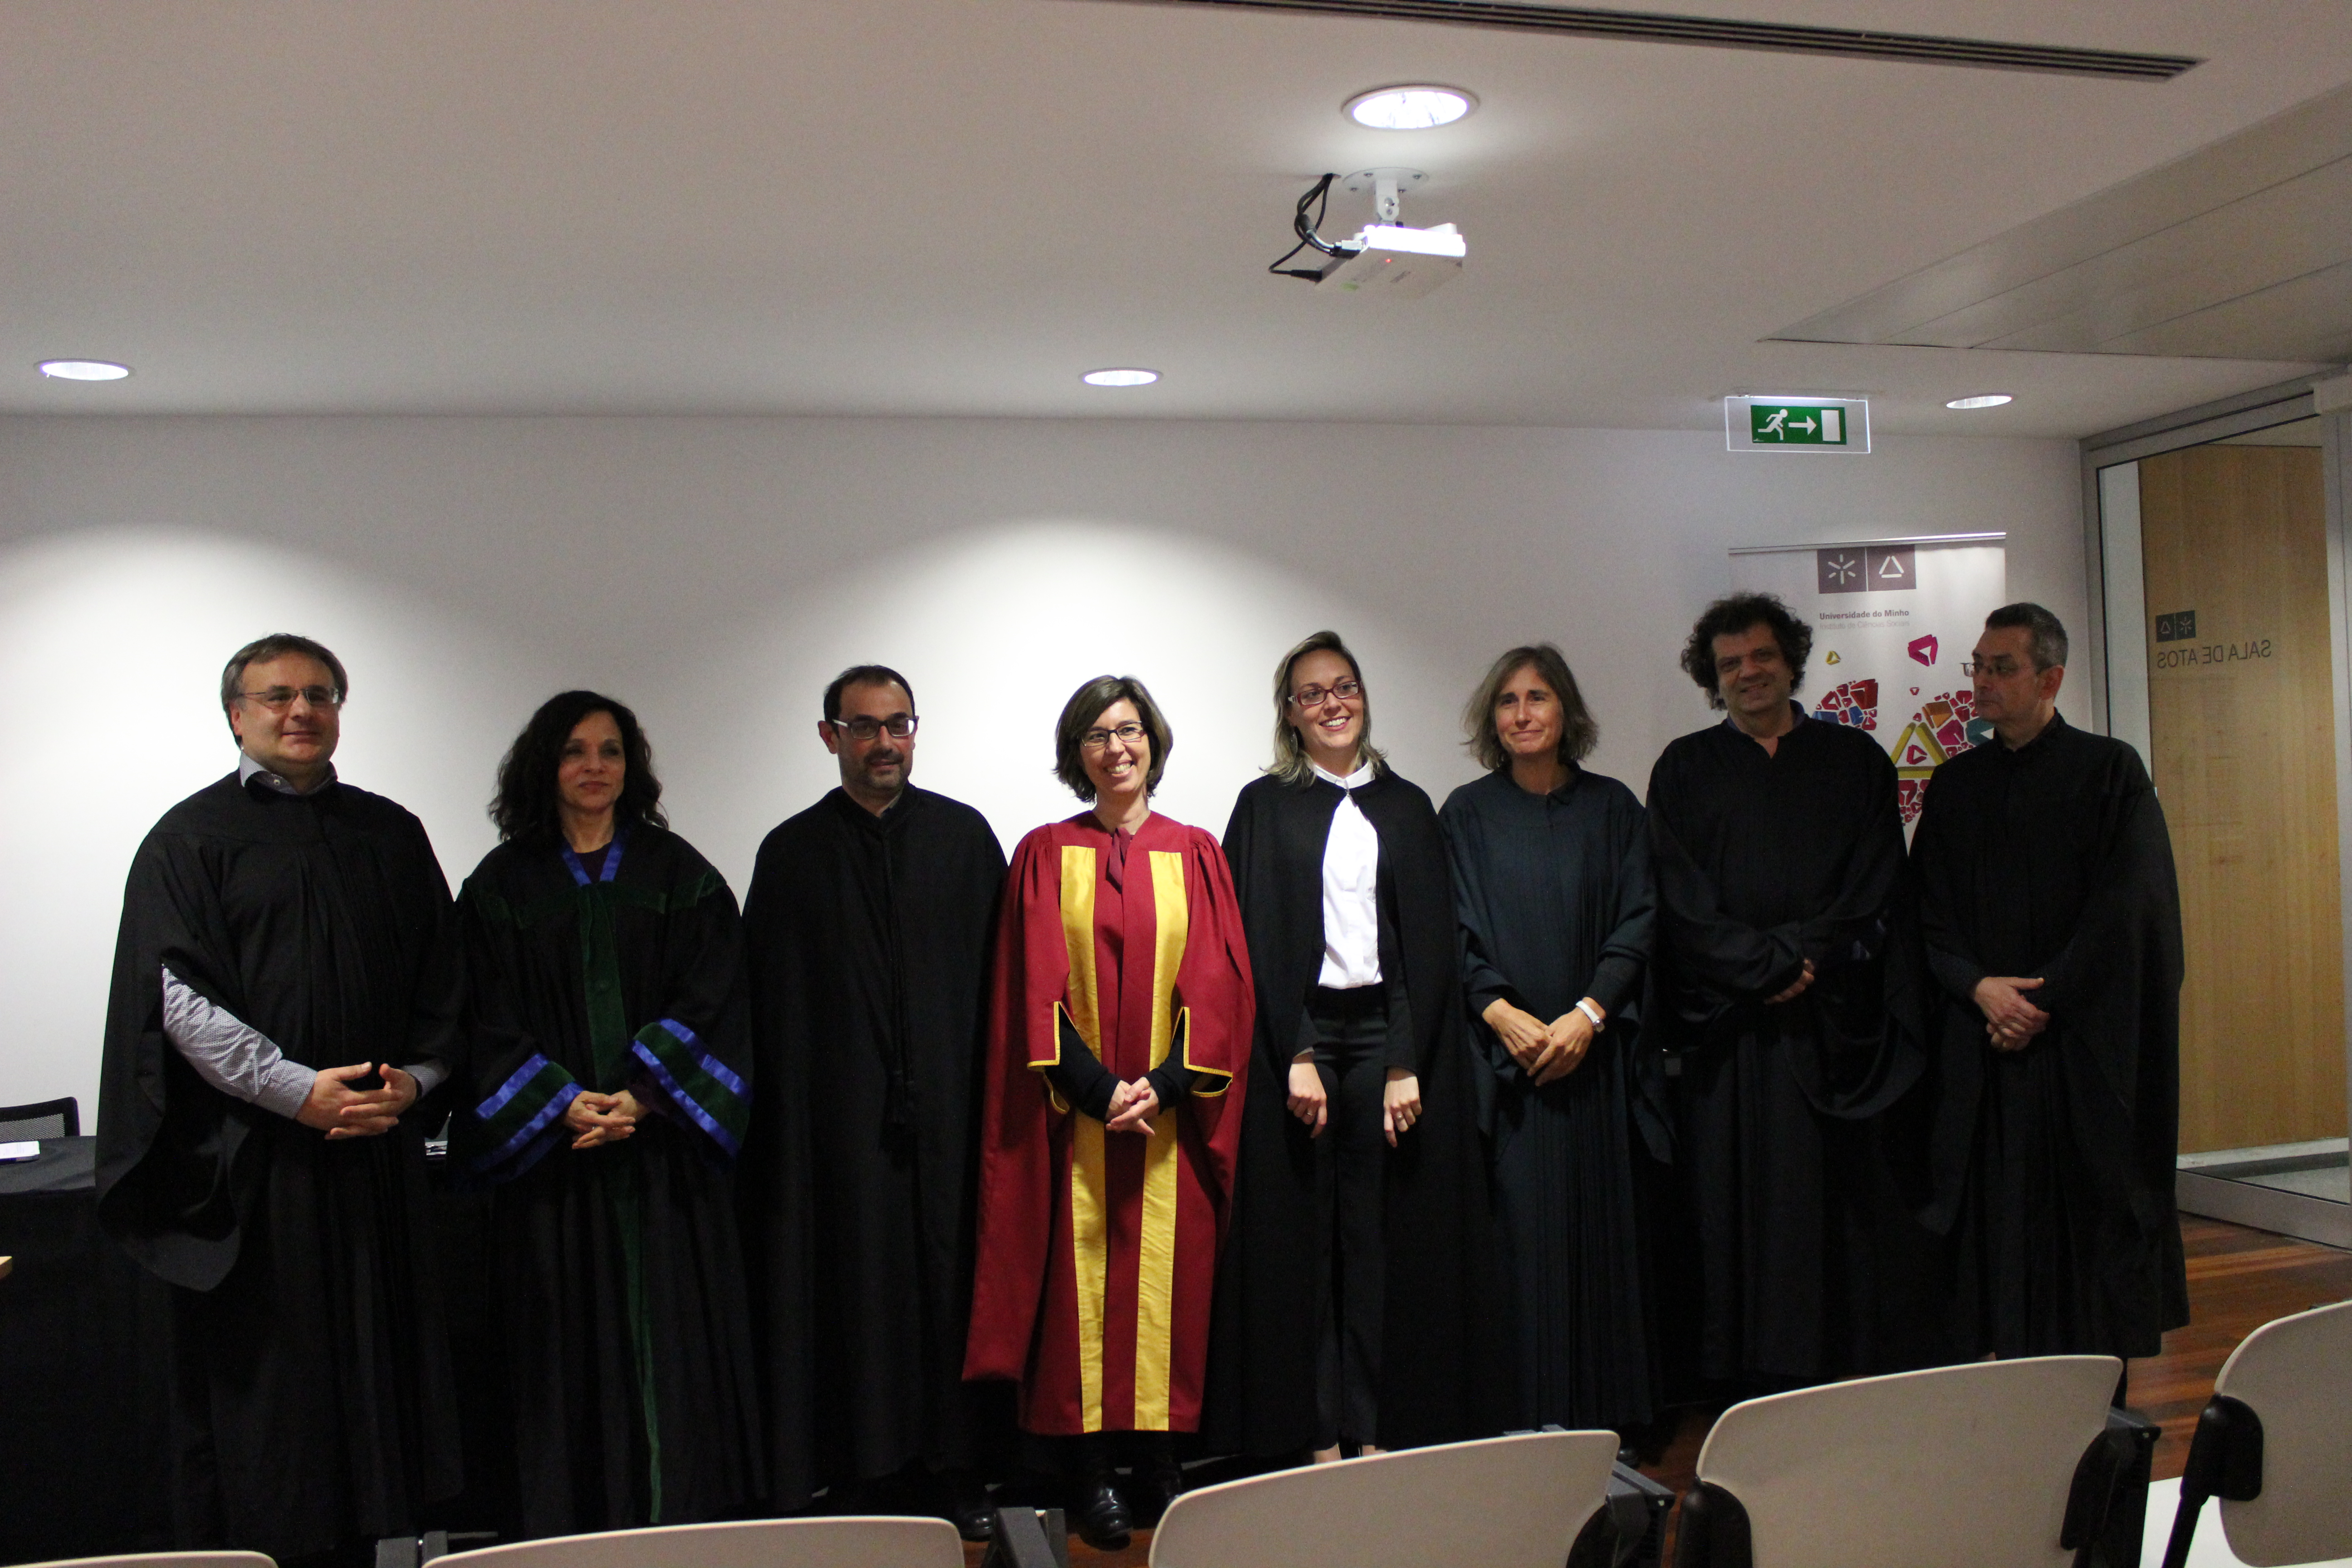 Julia Alves Brazil: new PhD in Cultural Studies